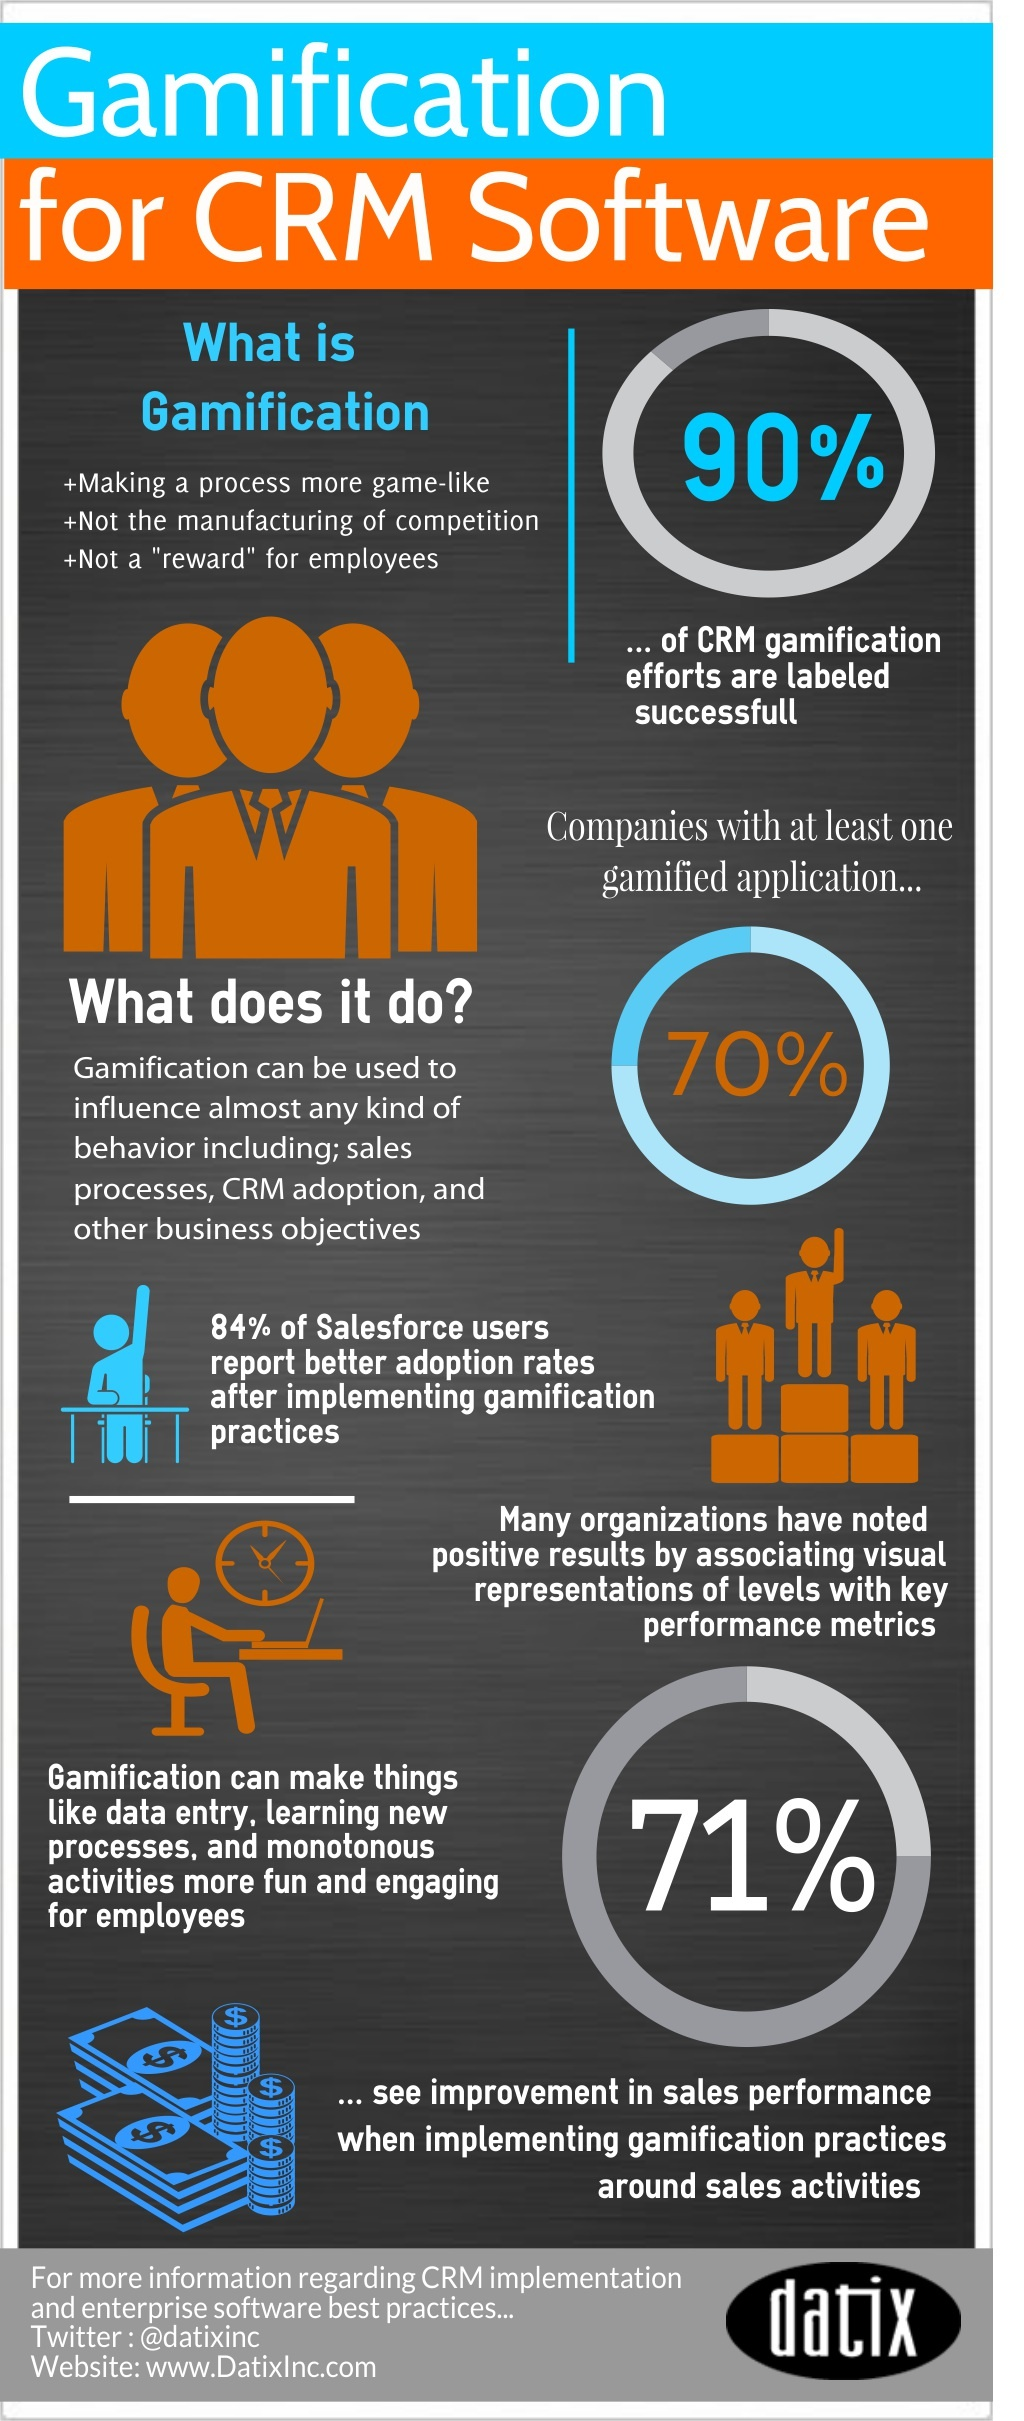 CRM gamification